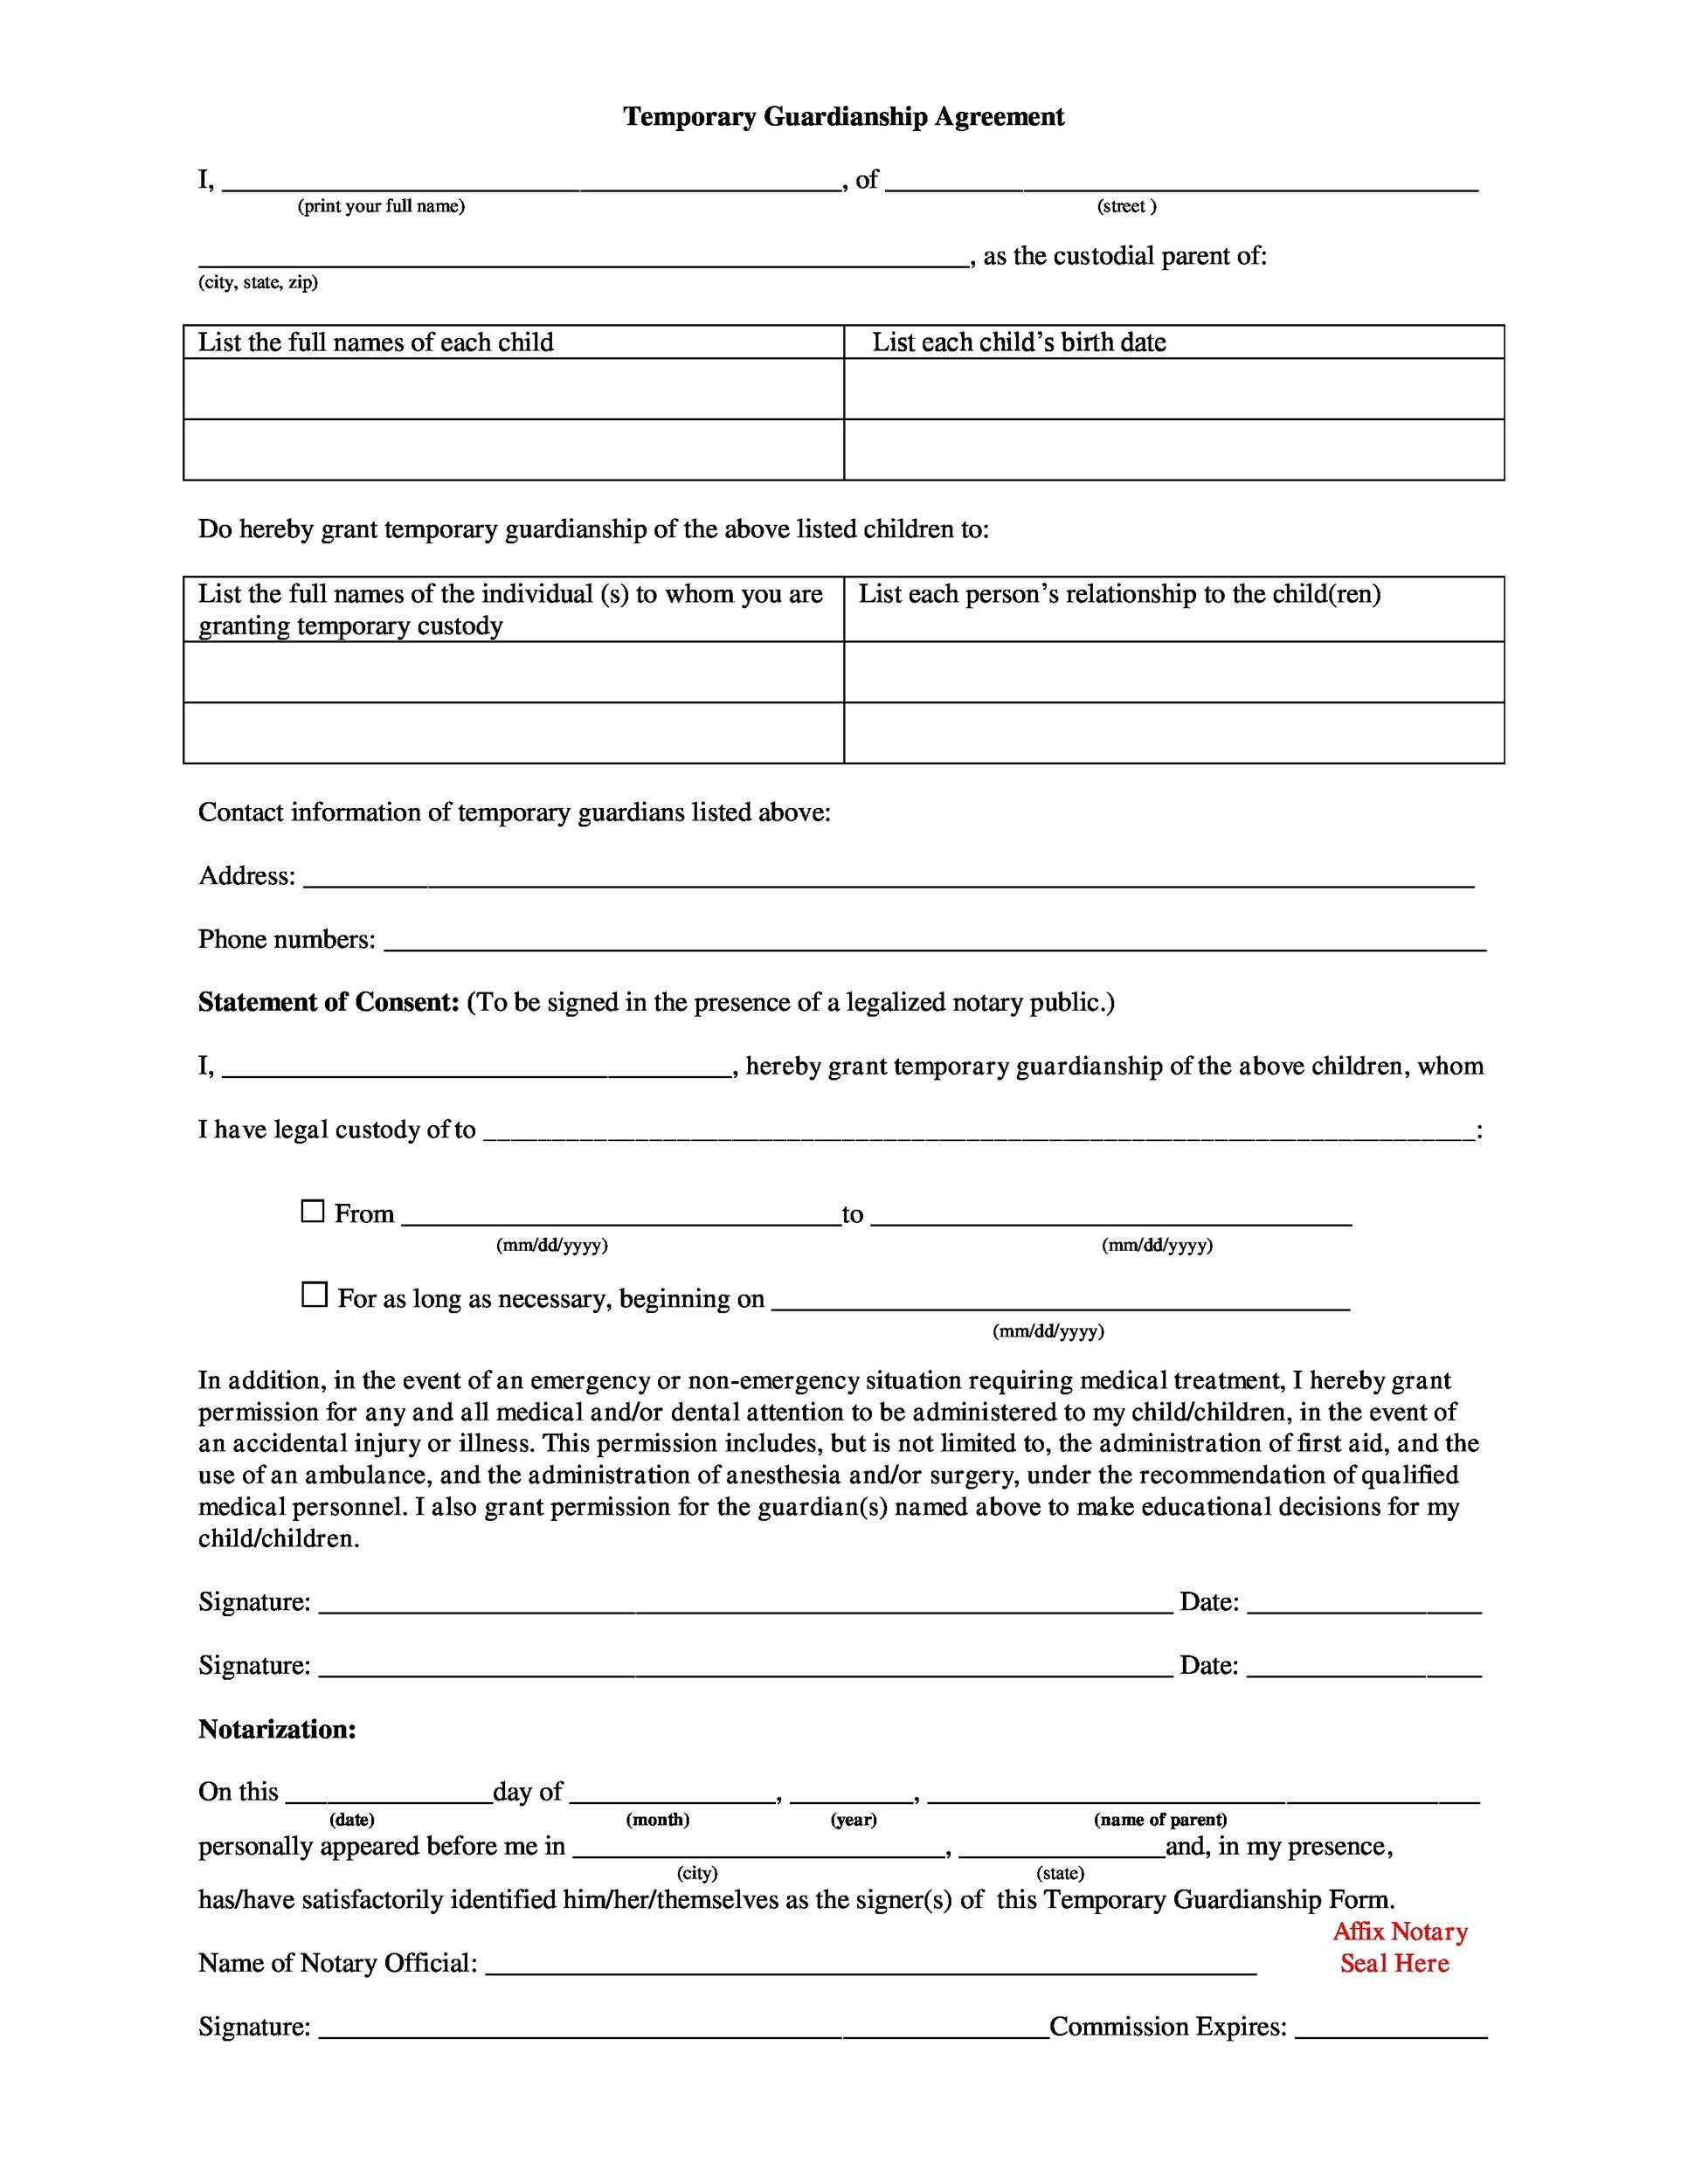 Business Sales Agreement Business Purchase And Sale Agreement - sample business purchase agreement